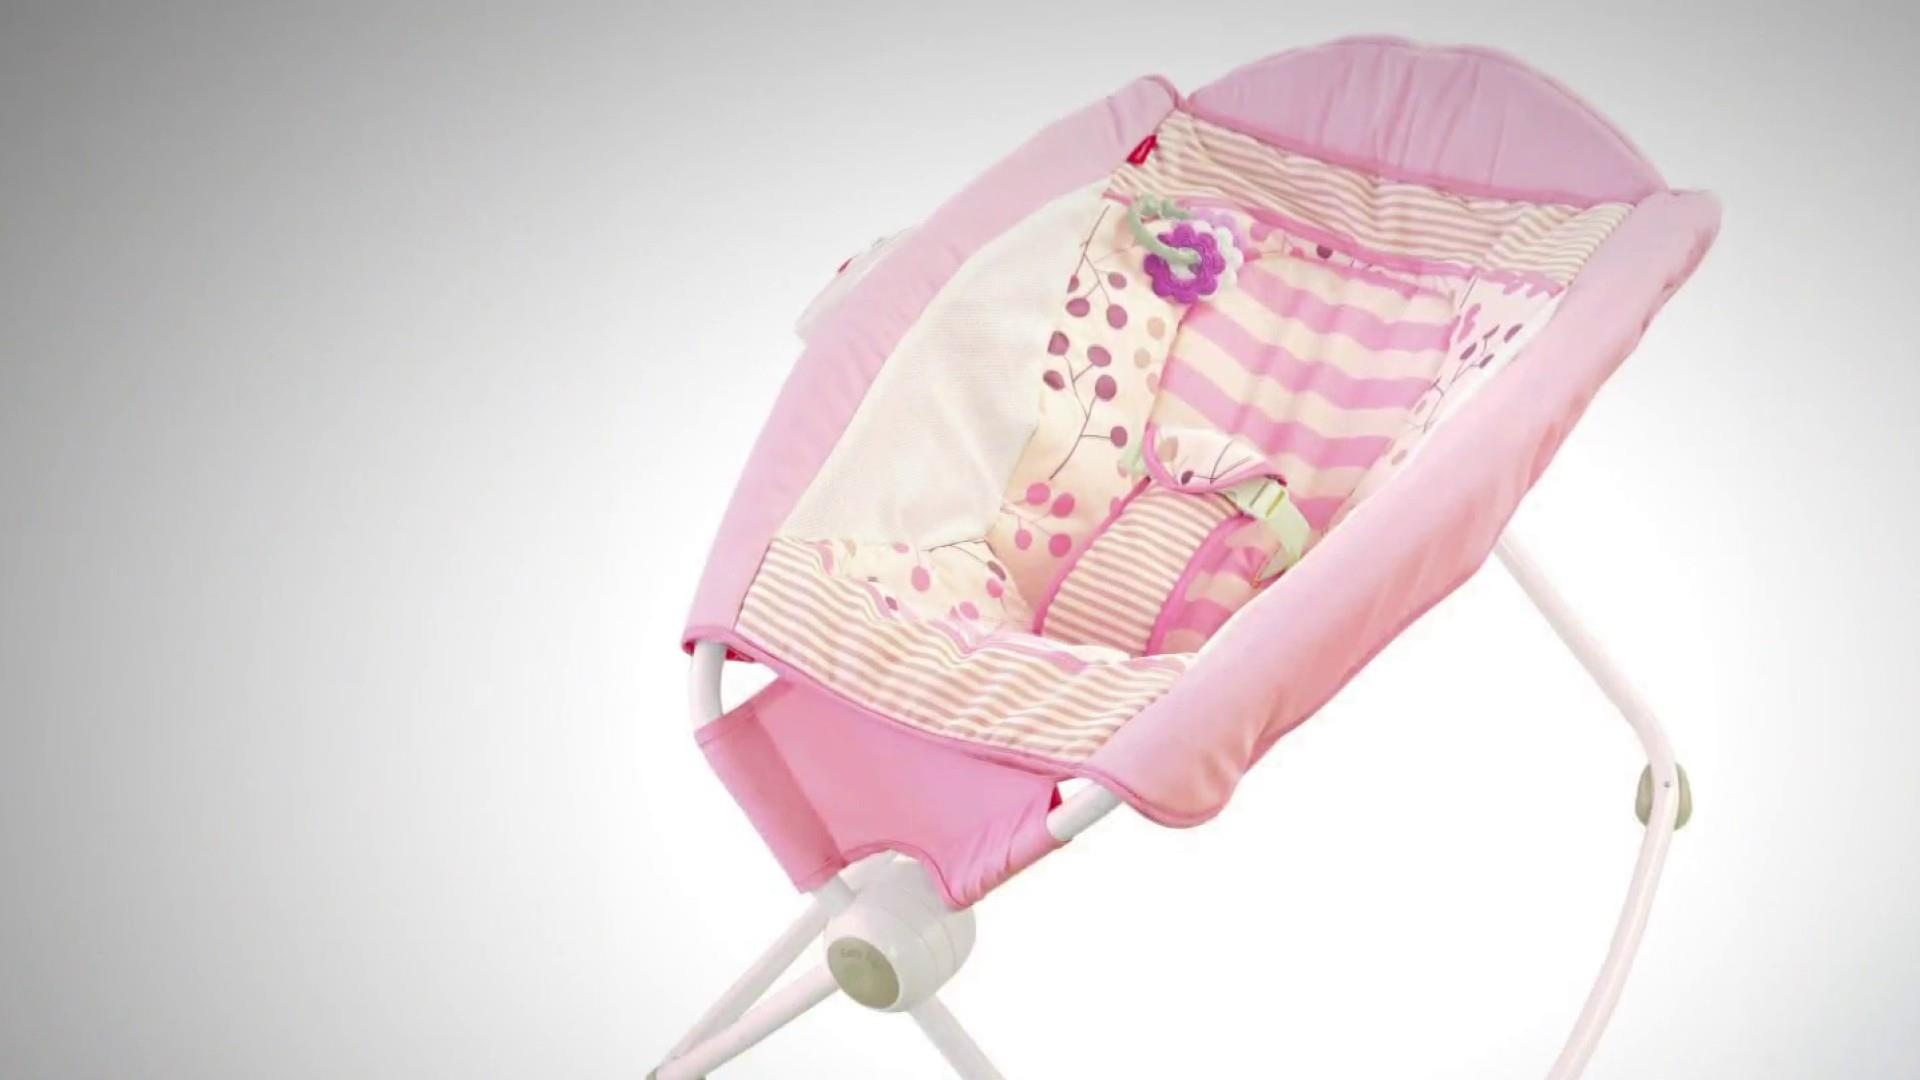 Consumer Product Safety Commission under fire after Rock 'n Play infant deaths